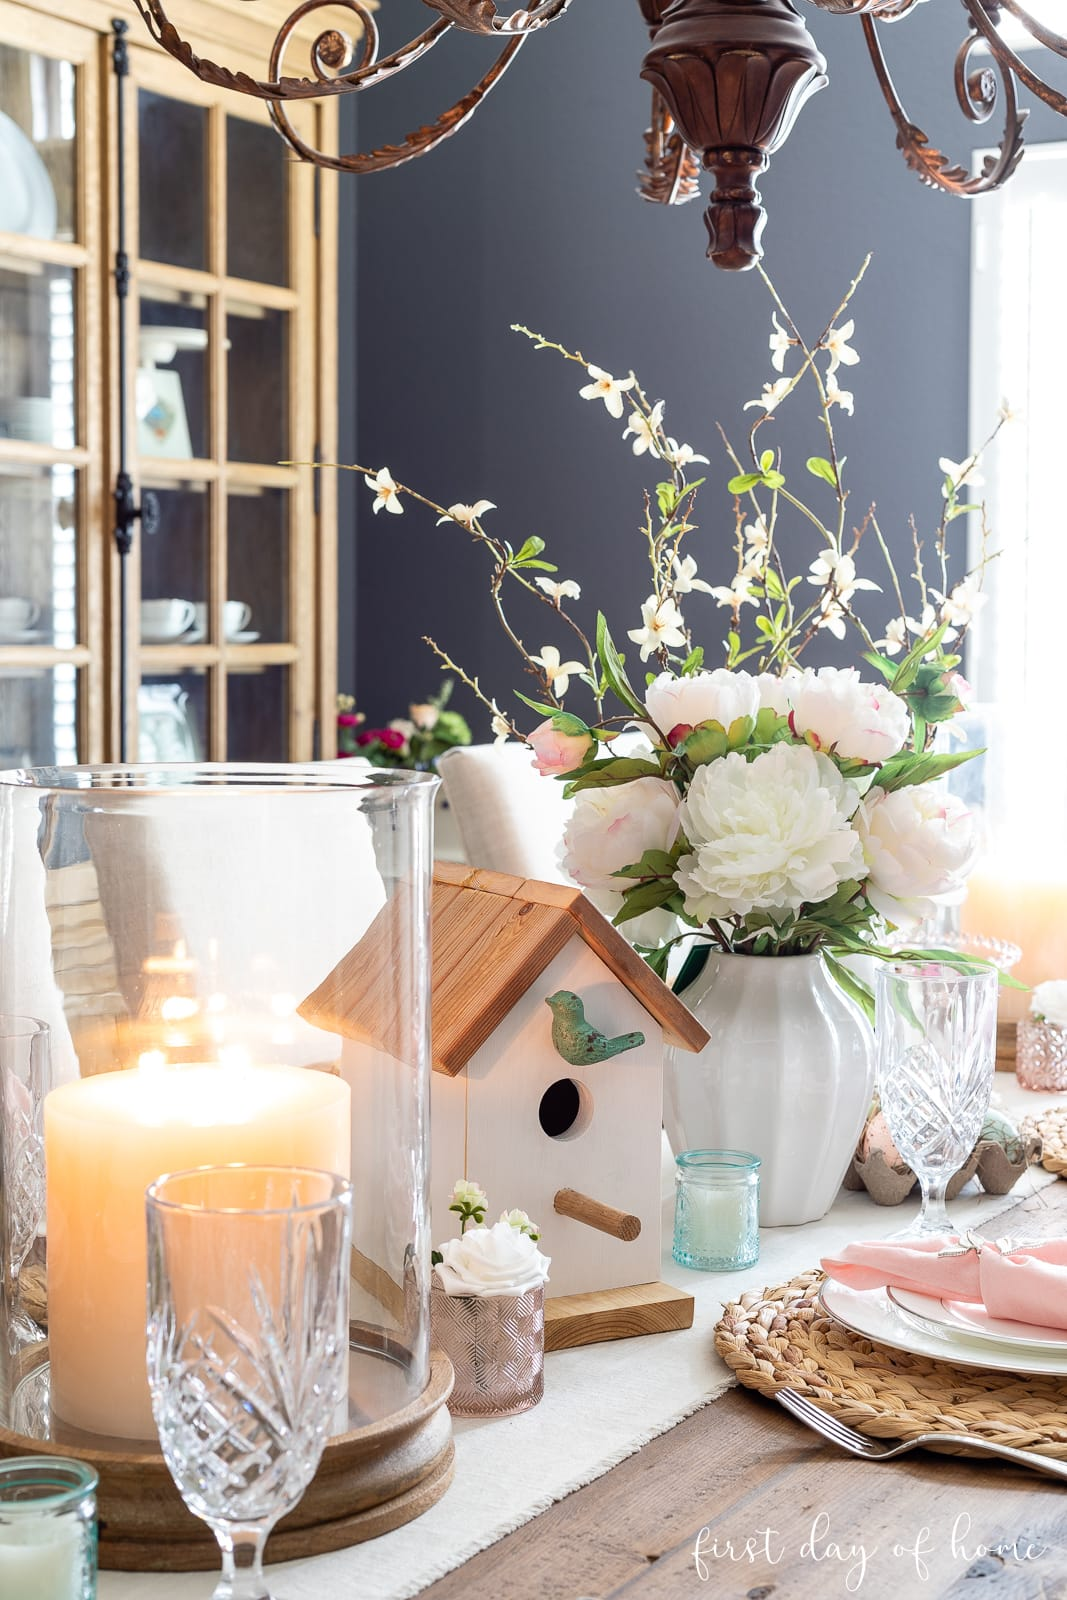 Spring table decor with pillar candles, birdhouse and floral centerpieces arrangement